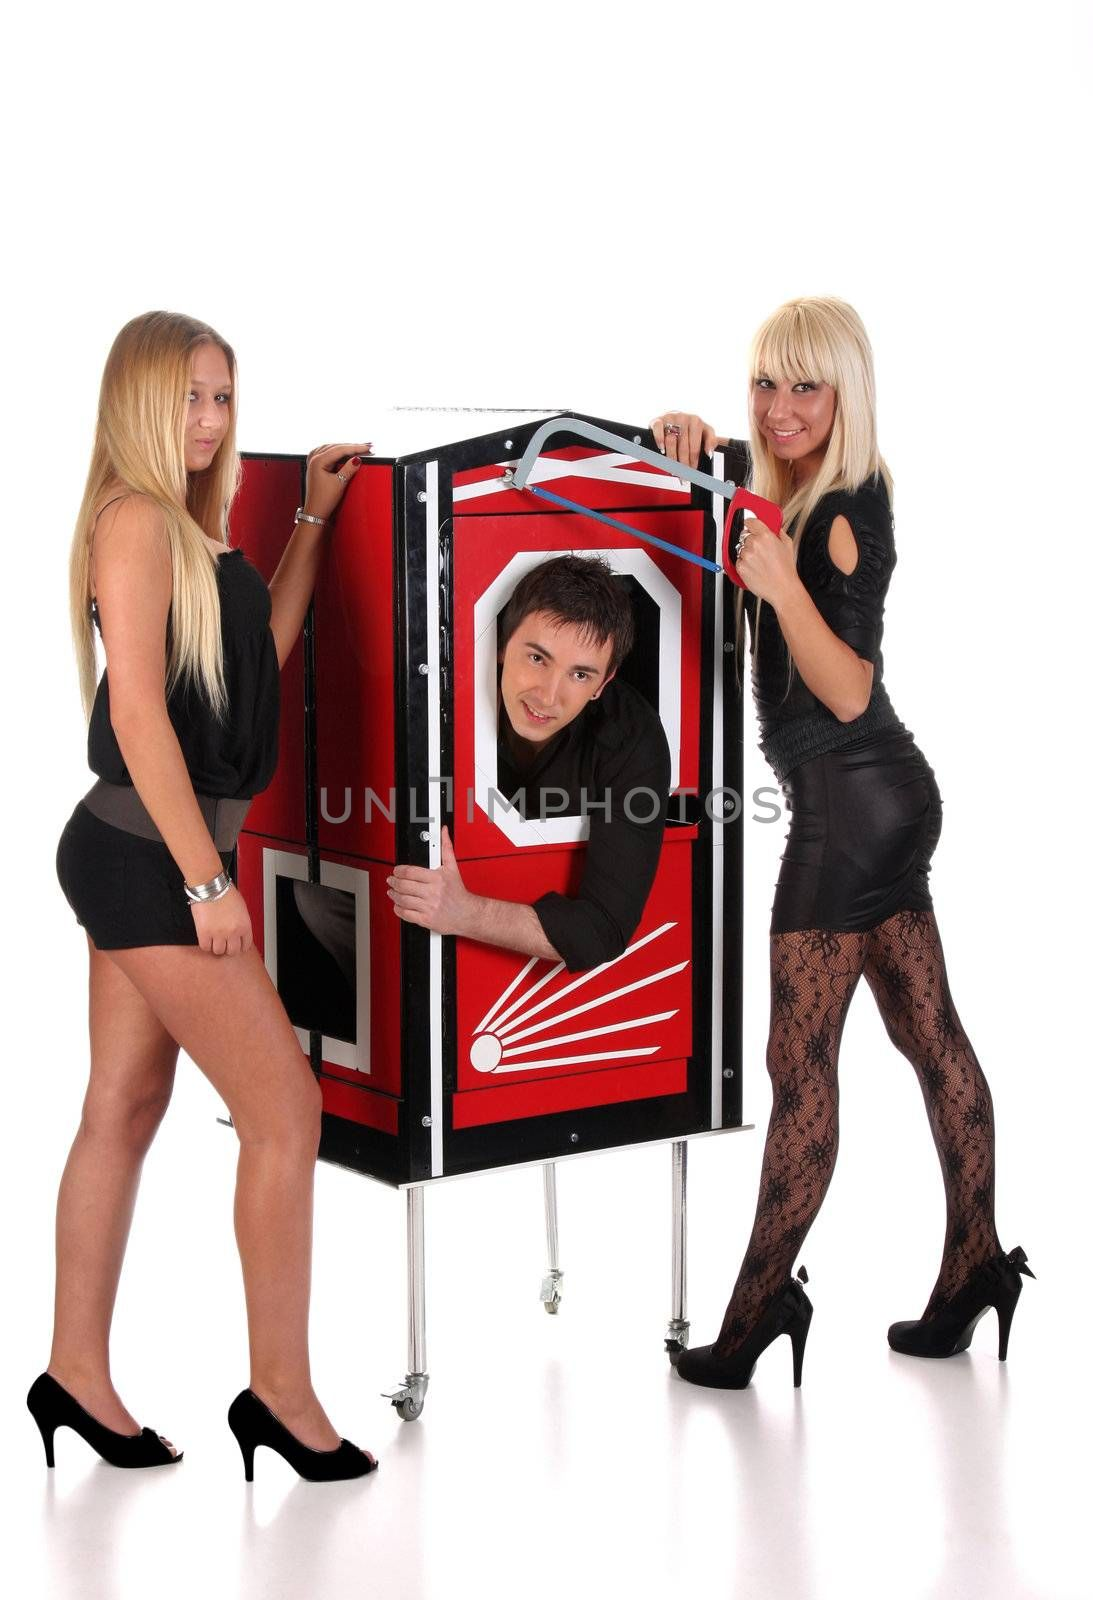 Magician performance and two beauty girls in a magic box with handsaw